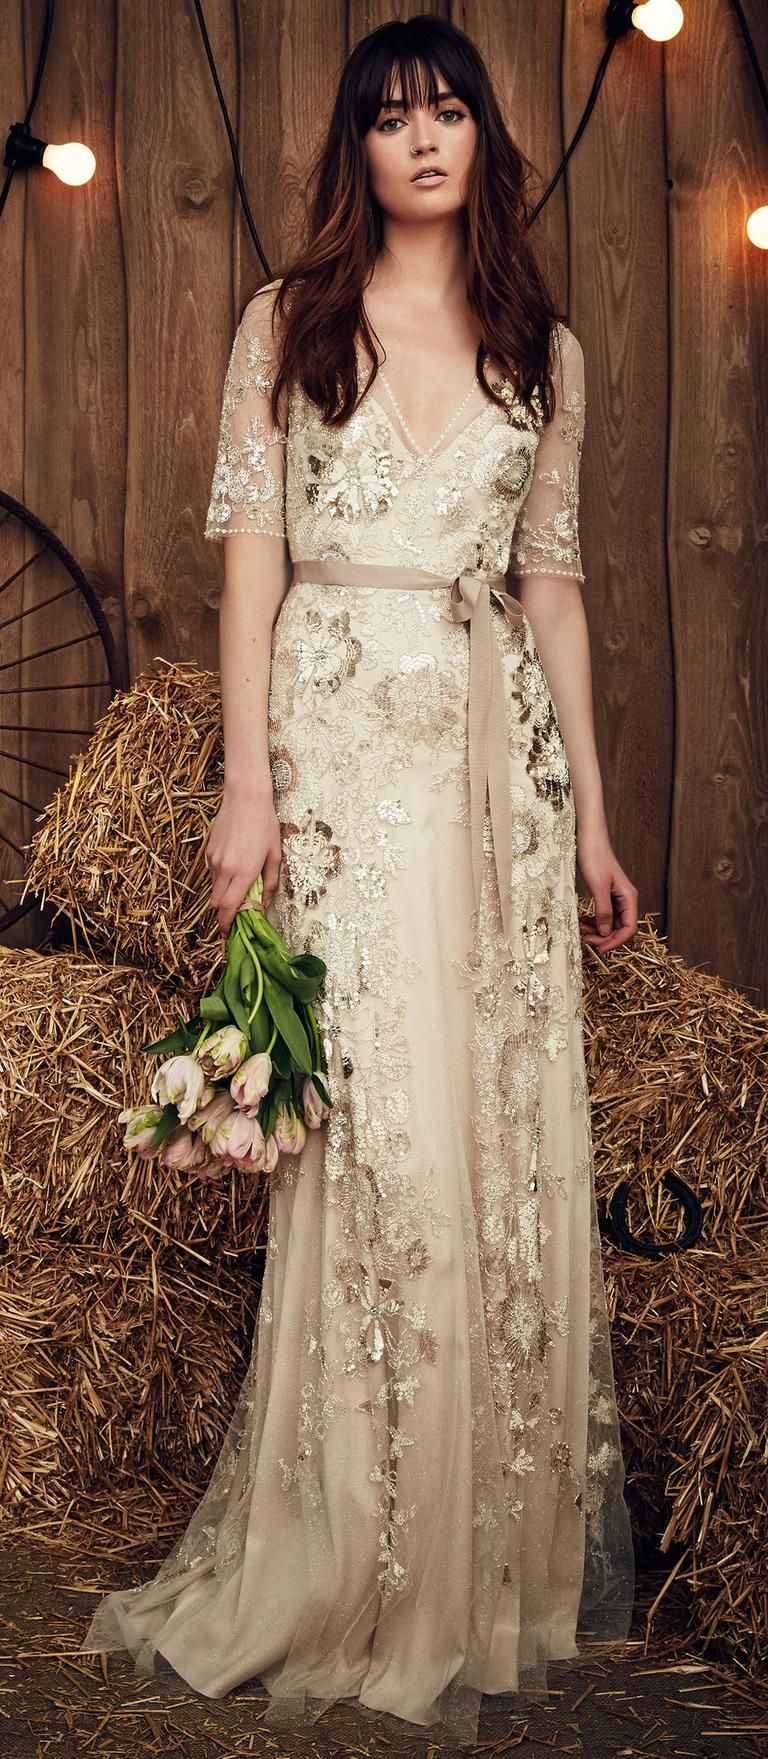 Jenny Packham Spring 2017 Faith champagne-hued wedding dress with ...